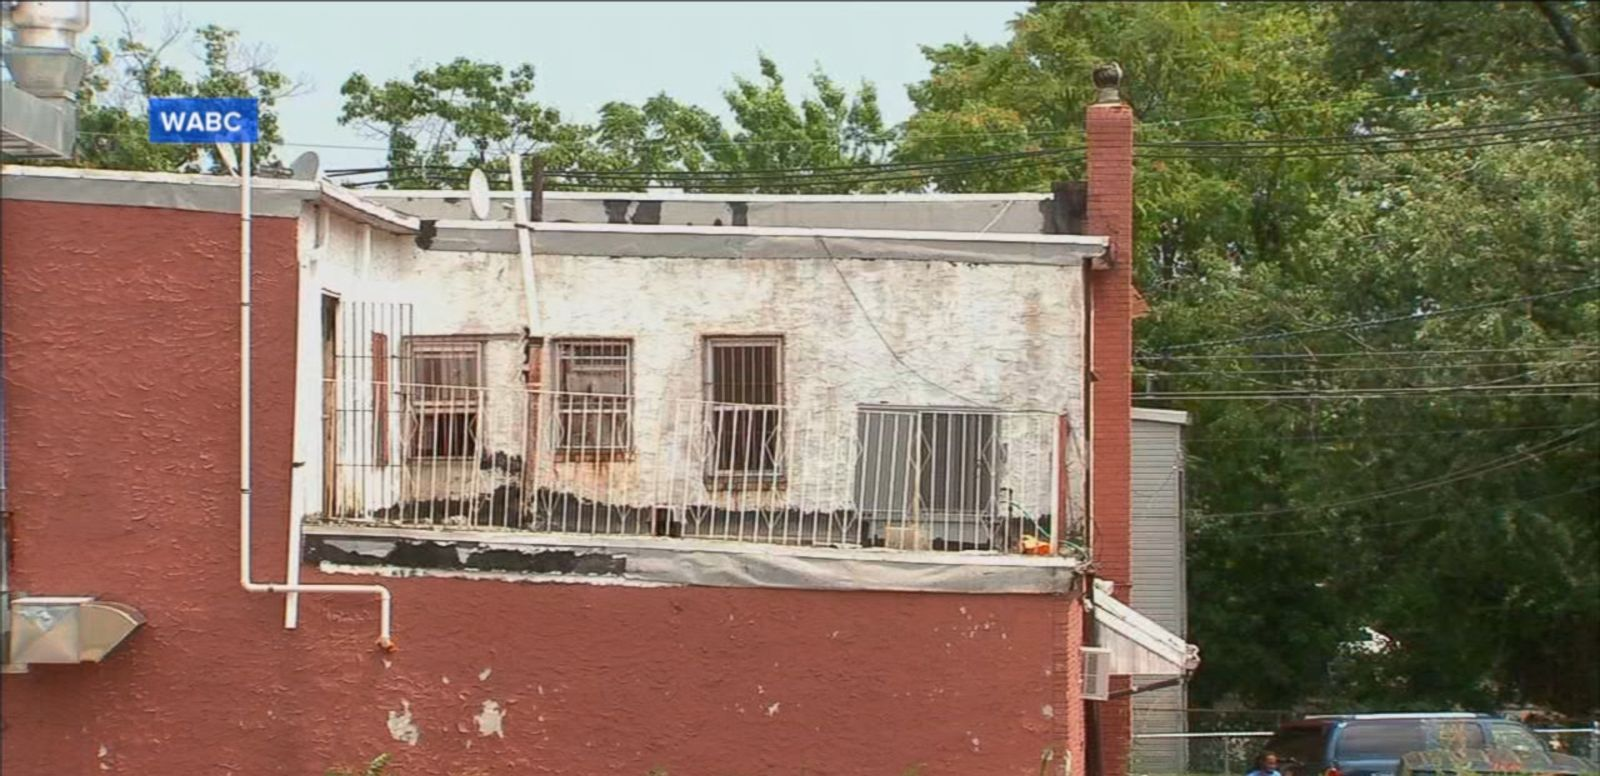 VIDEO: Officers in Newark, NJ, arrived at the rooftop and found two dogs being burned by the hot tar.